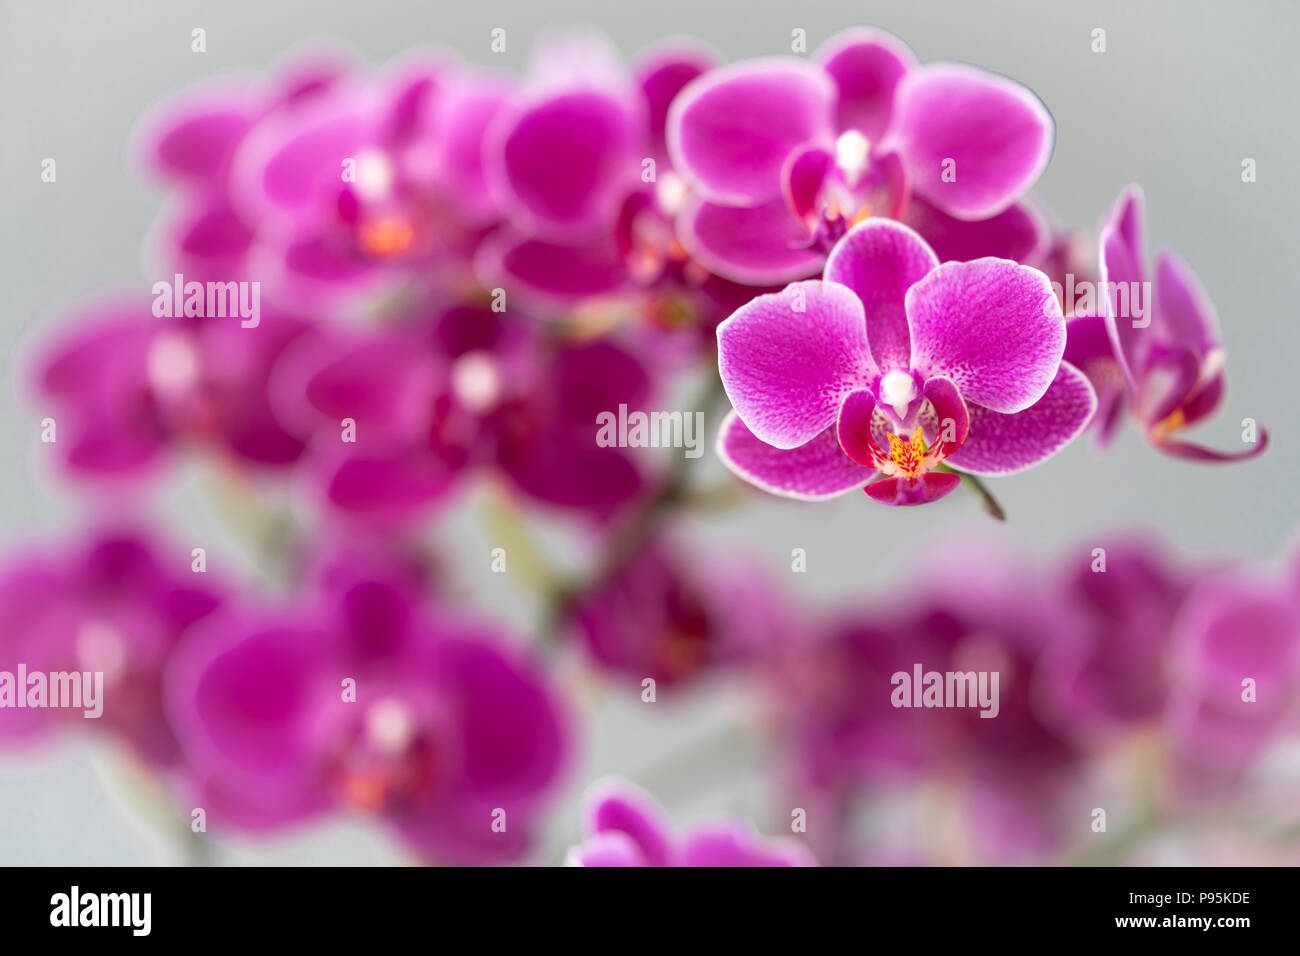 A tight focus on a magenta coloured moth orchid with progressively out of focus flowers behind giving a pleasing out of focus effect - Stock Image